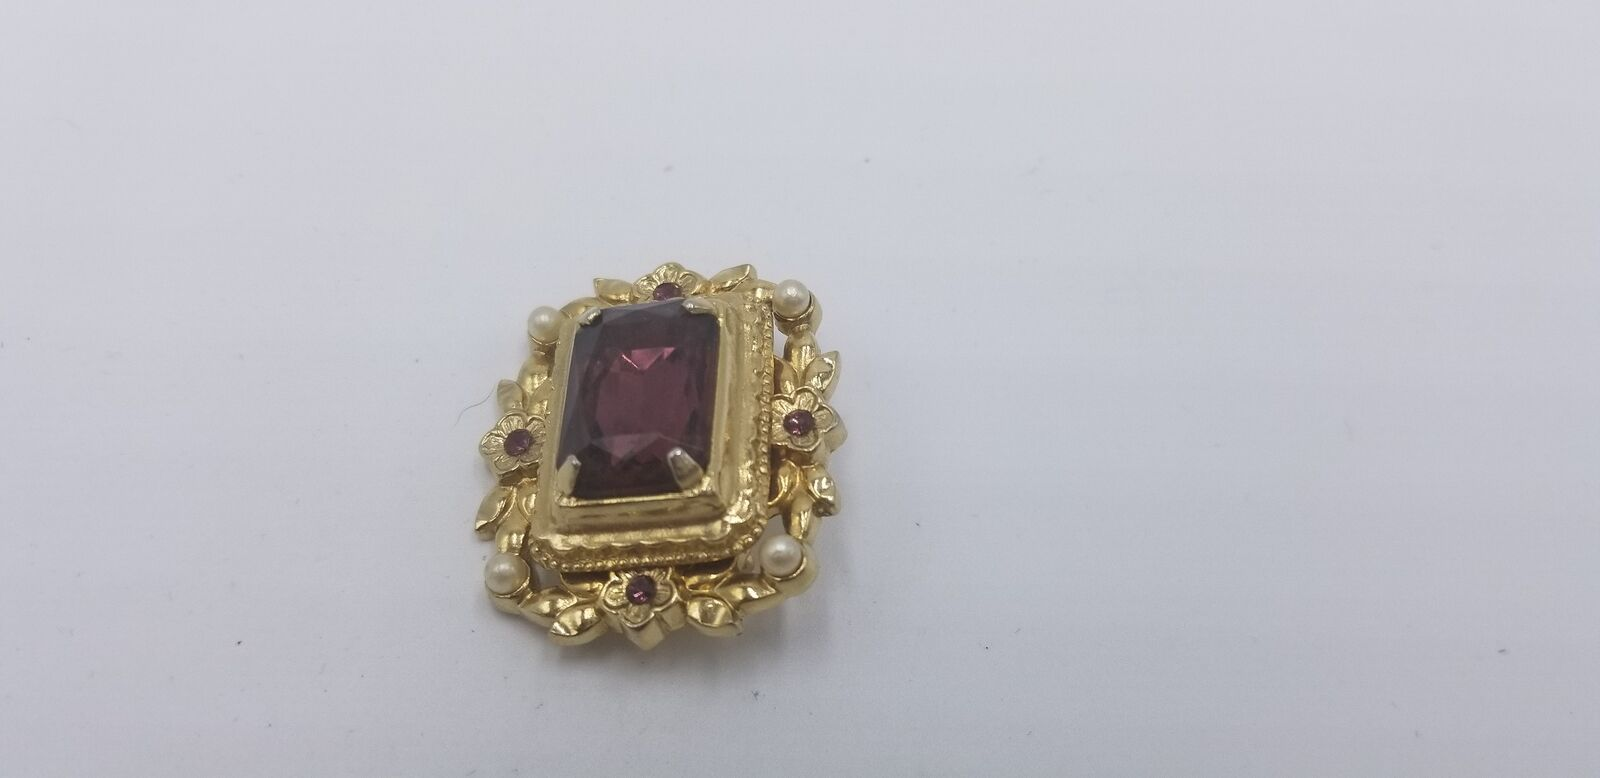 Vintage Signed Coro Gold Tone Pearl & Purple Stone Floral Pin / Brooch EUC image 2